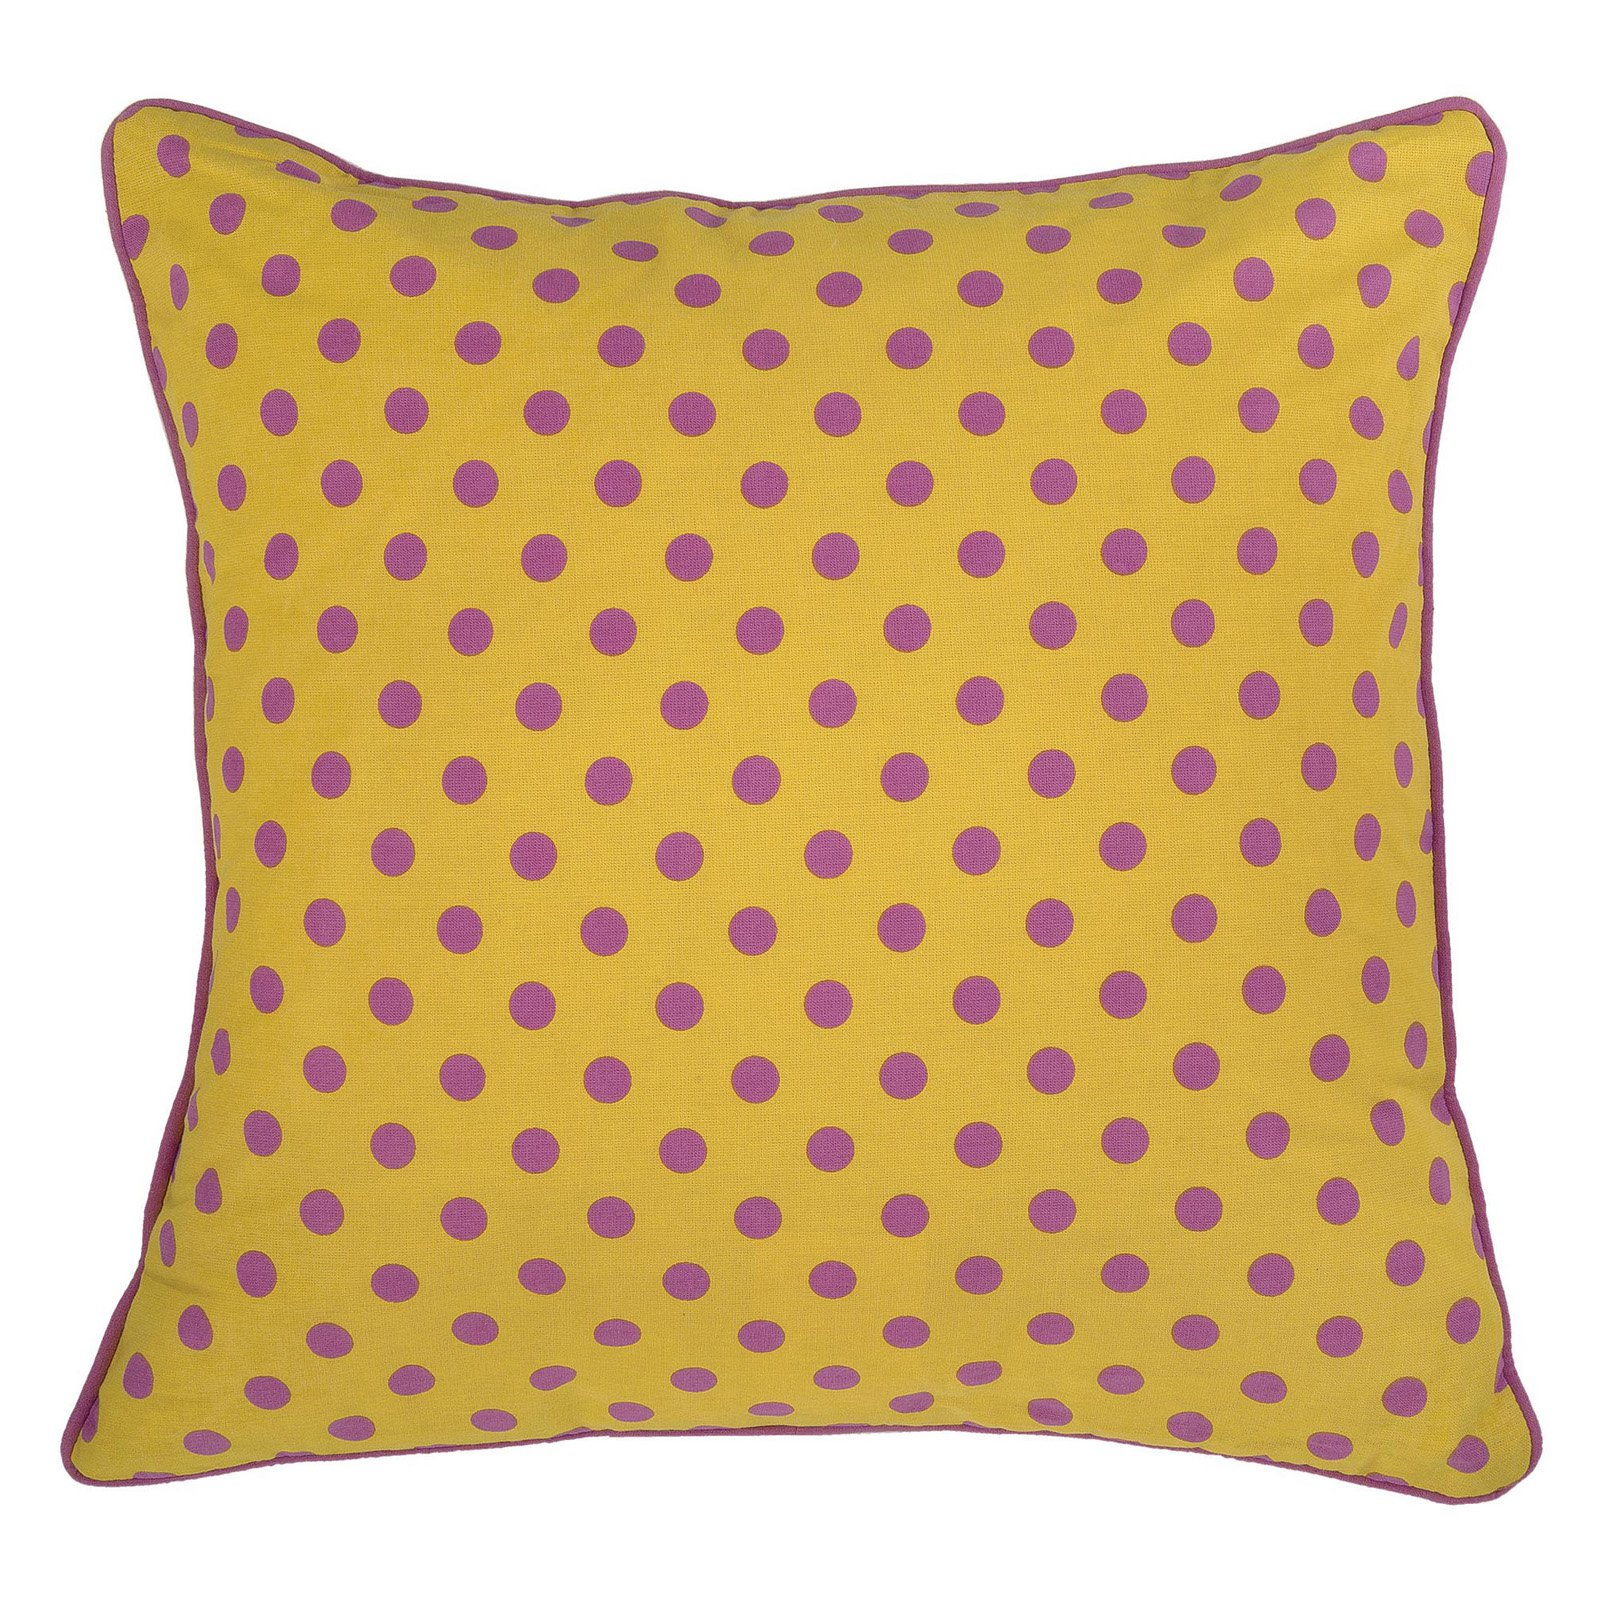 "Rachel Kate By Rizzy Home Decorative Poly Filled Throw Pillow Dots 18""X18"" Yellow"